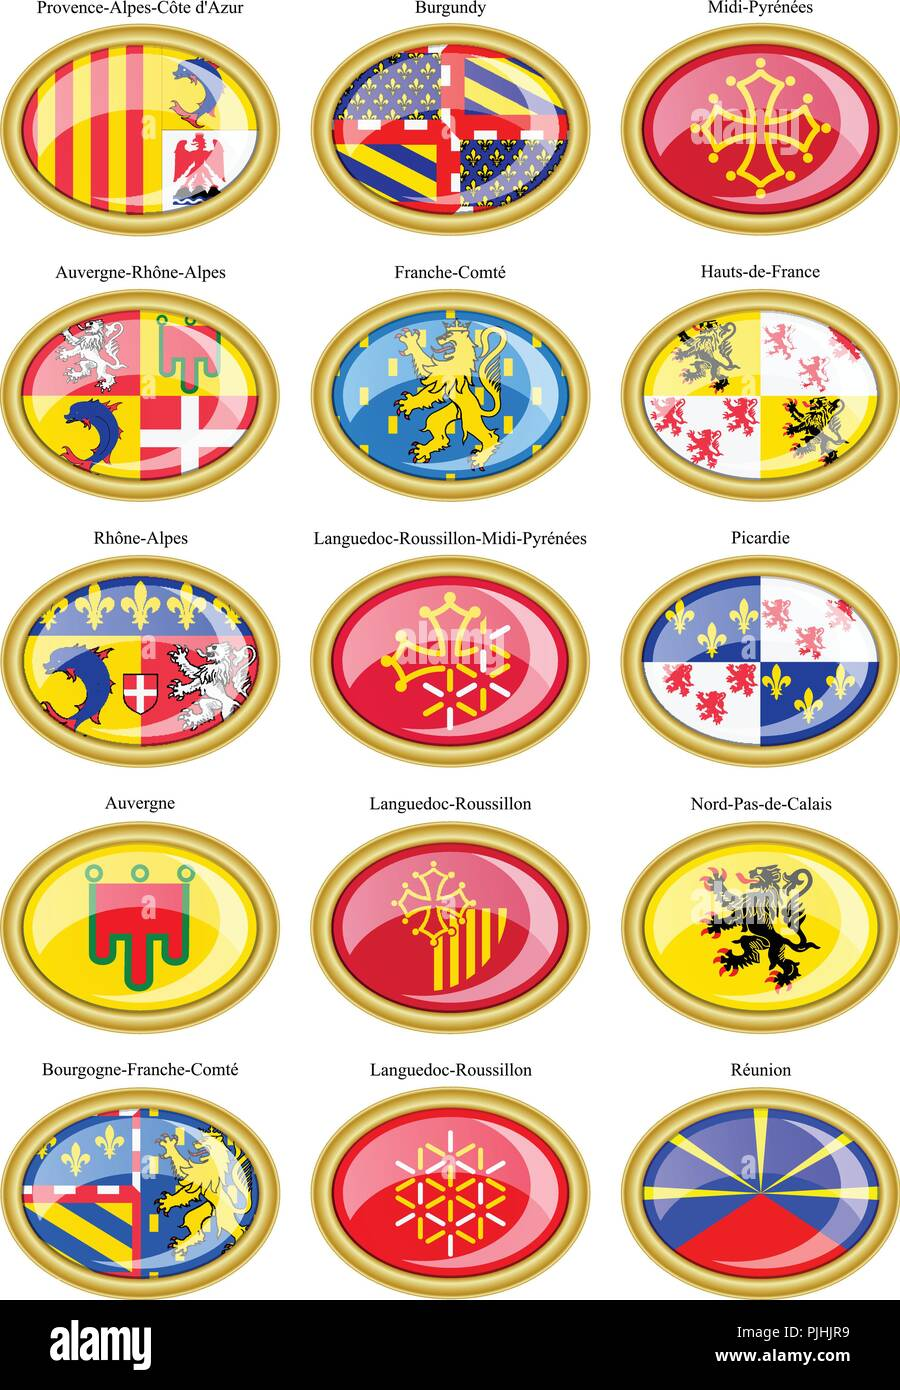 Regions De France Set Of Icons Regions Of France Flags Stock Vector Art